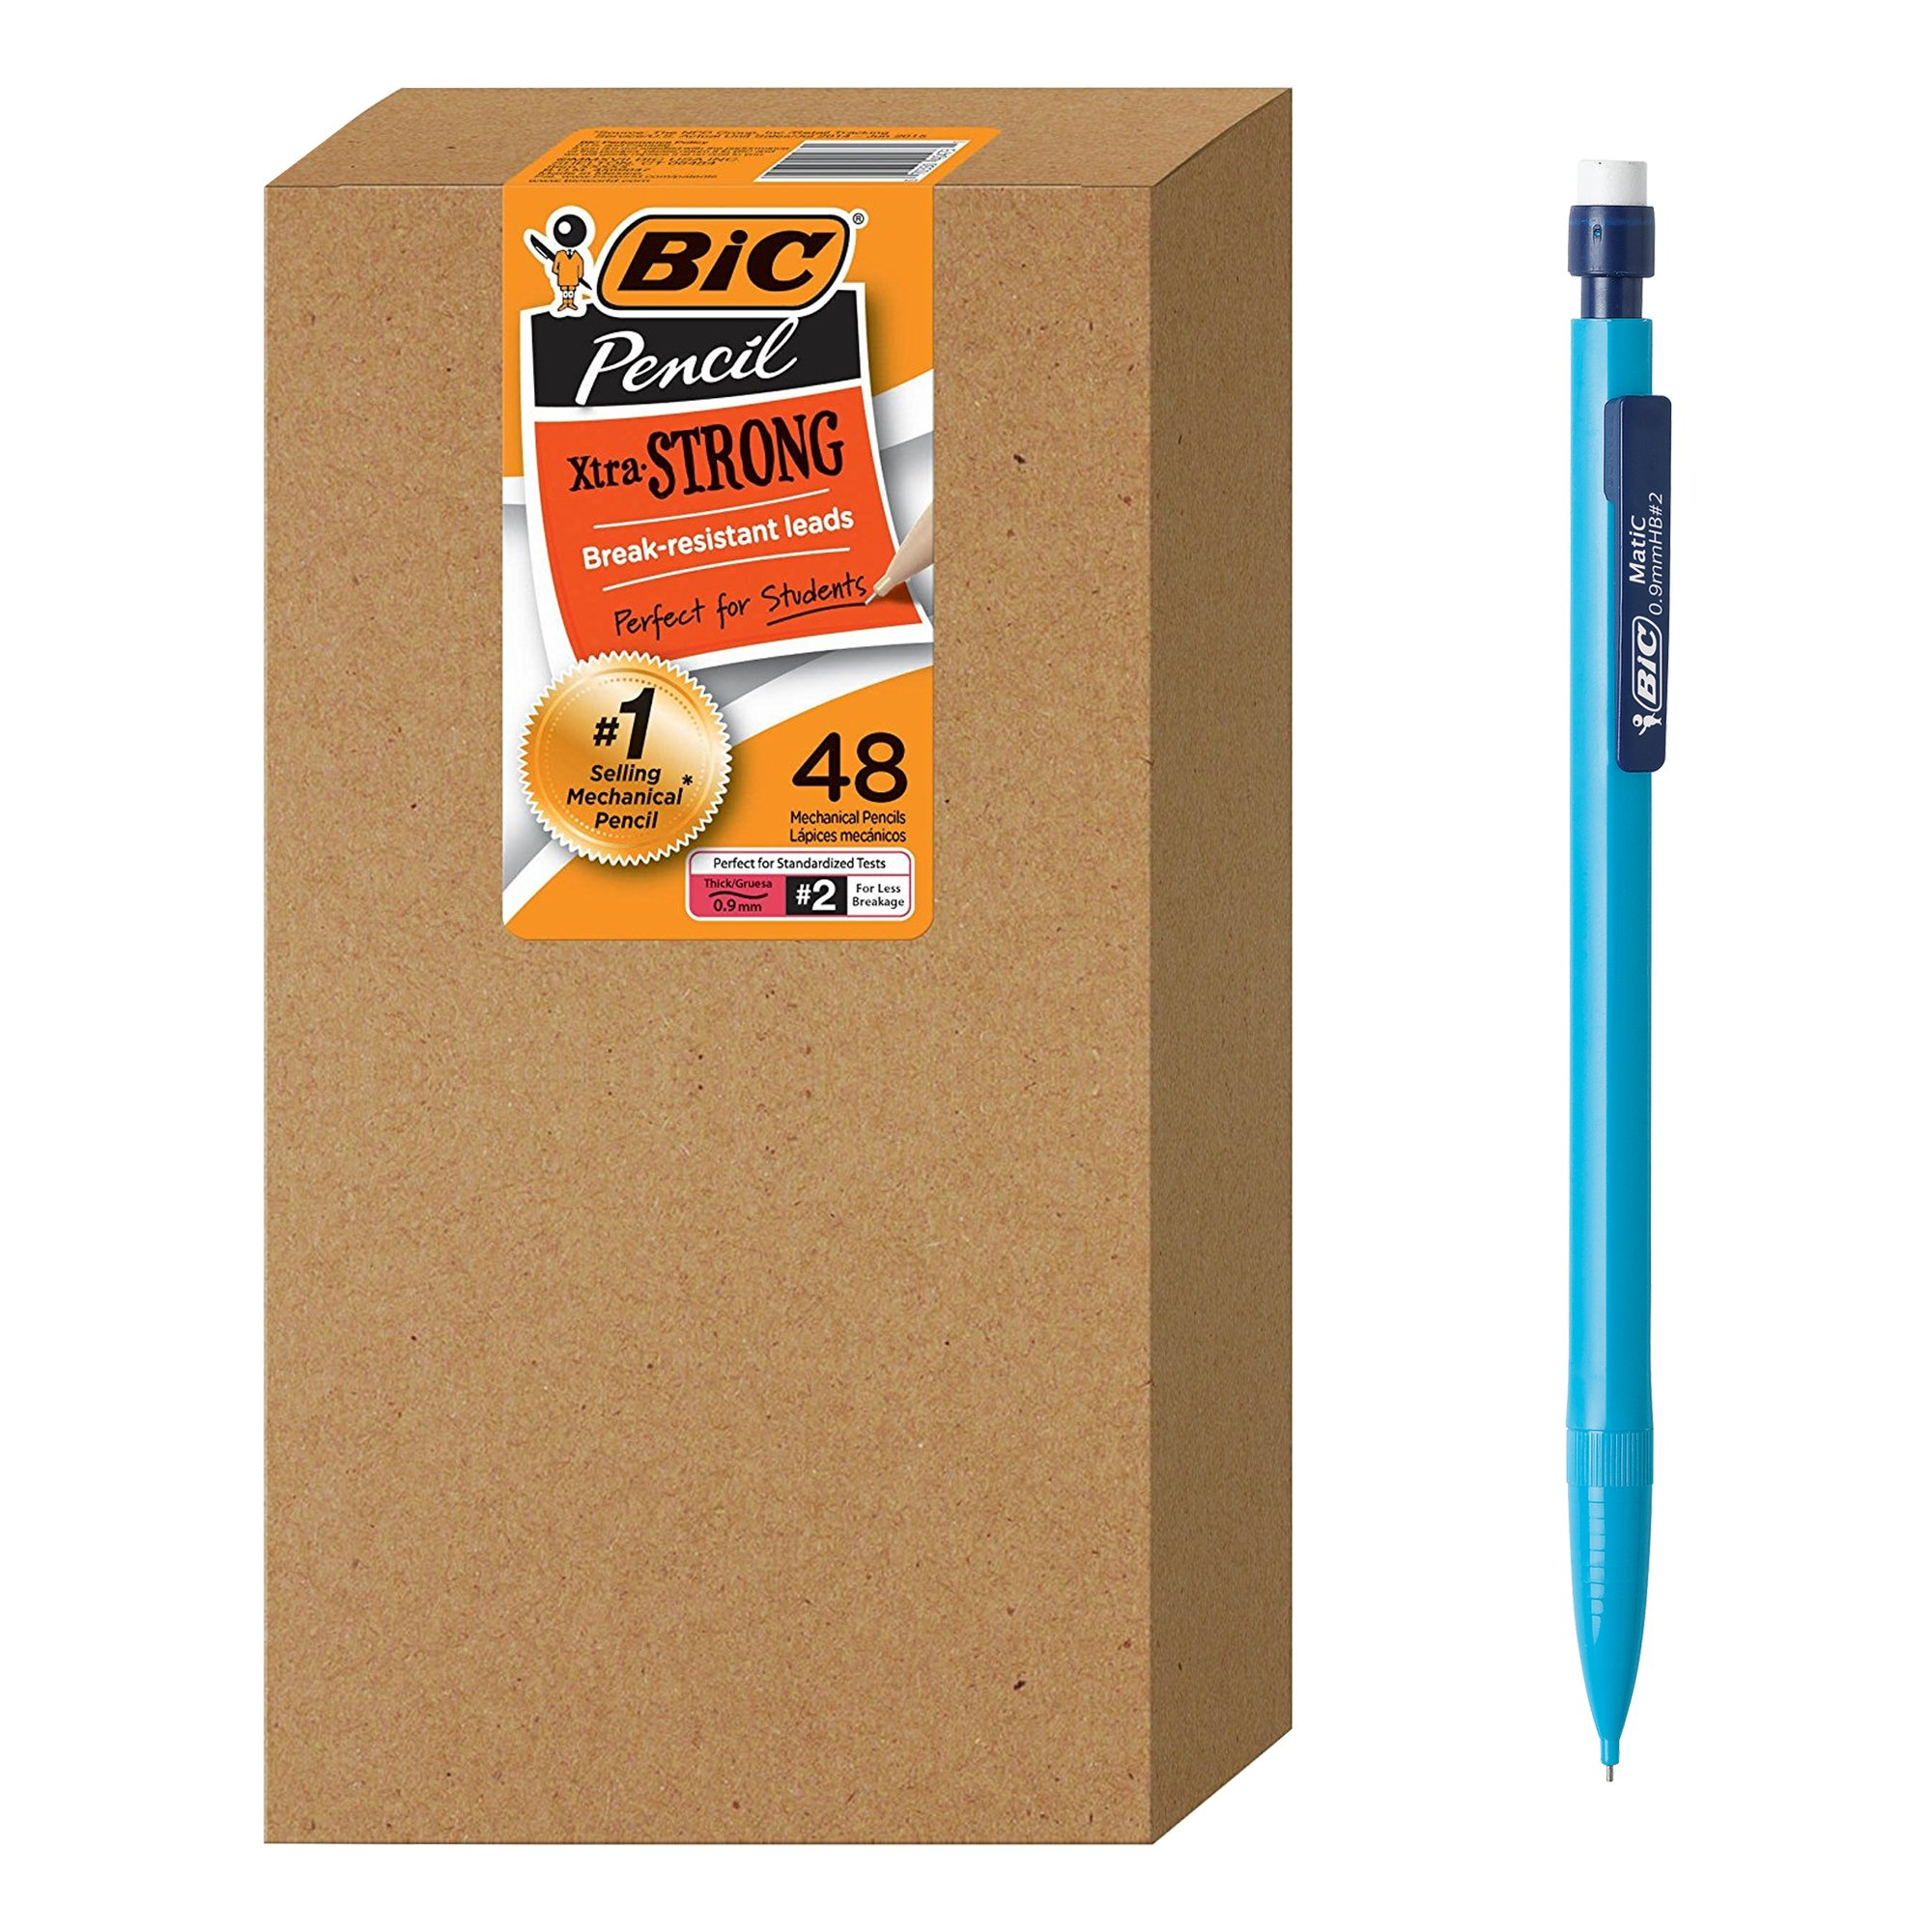 BIC Xtra-Strong Mechanical Pencil, Colorful Barrel, Thick Point (0.9mm), 48-Count by BIC